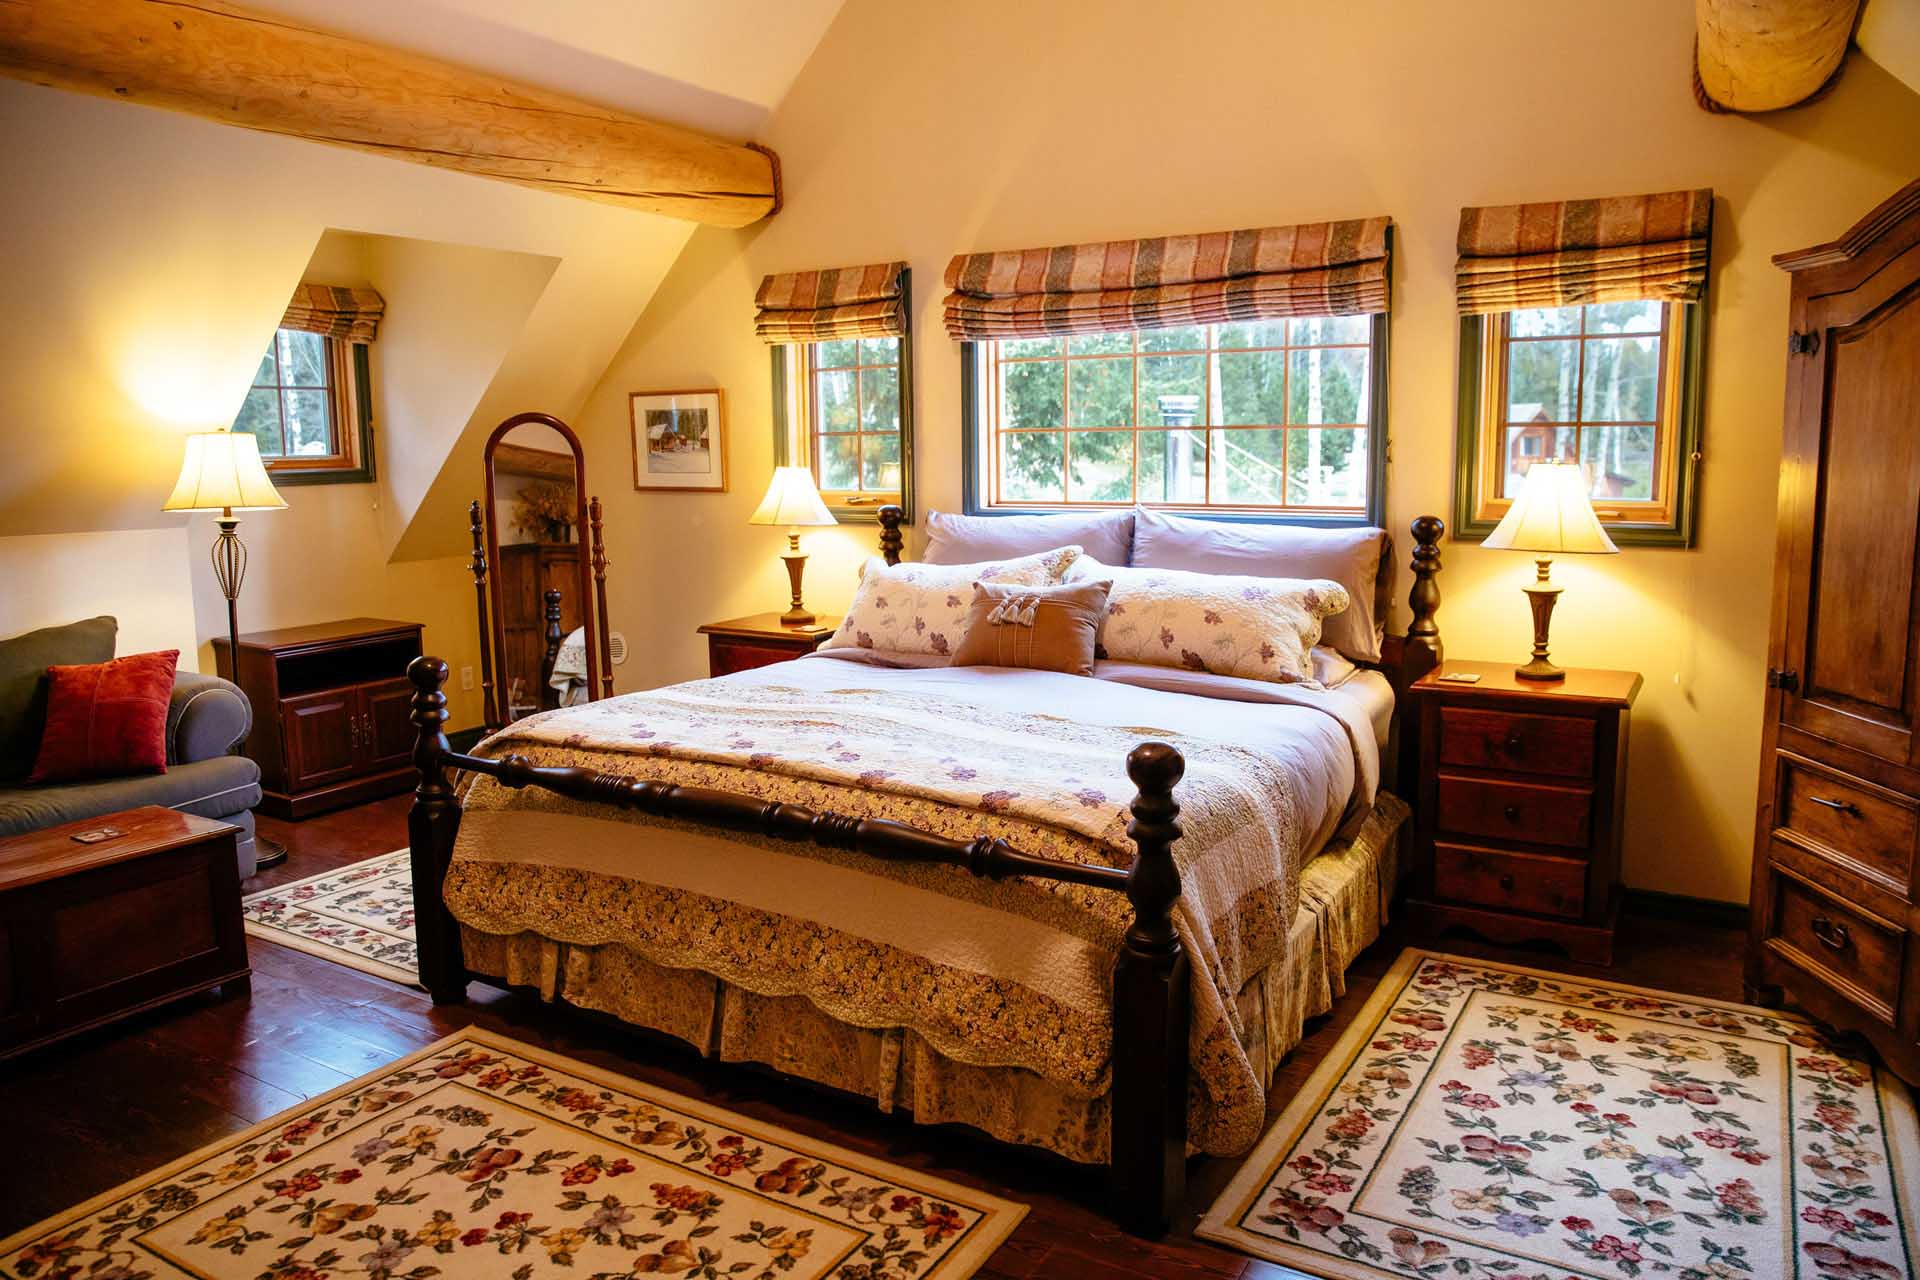 Ranch House Suites with lavish attention.